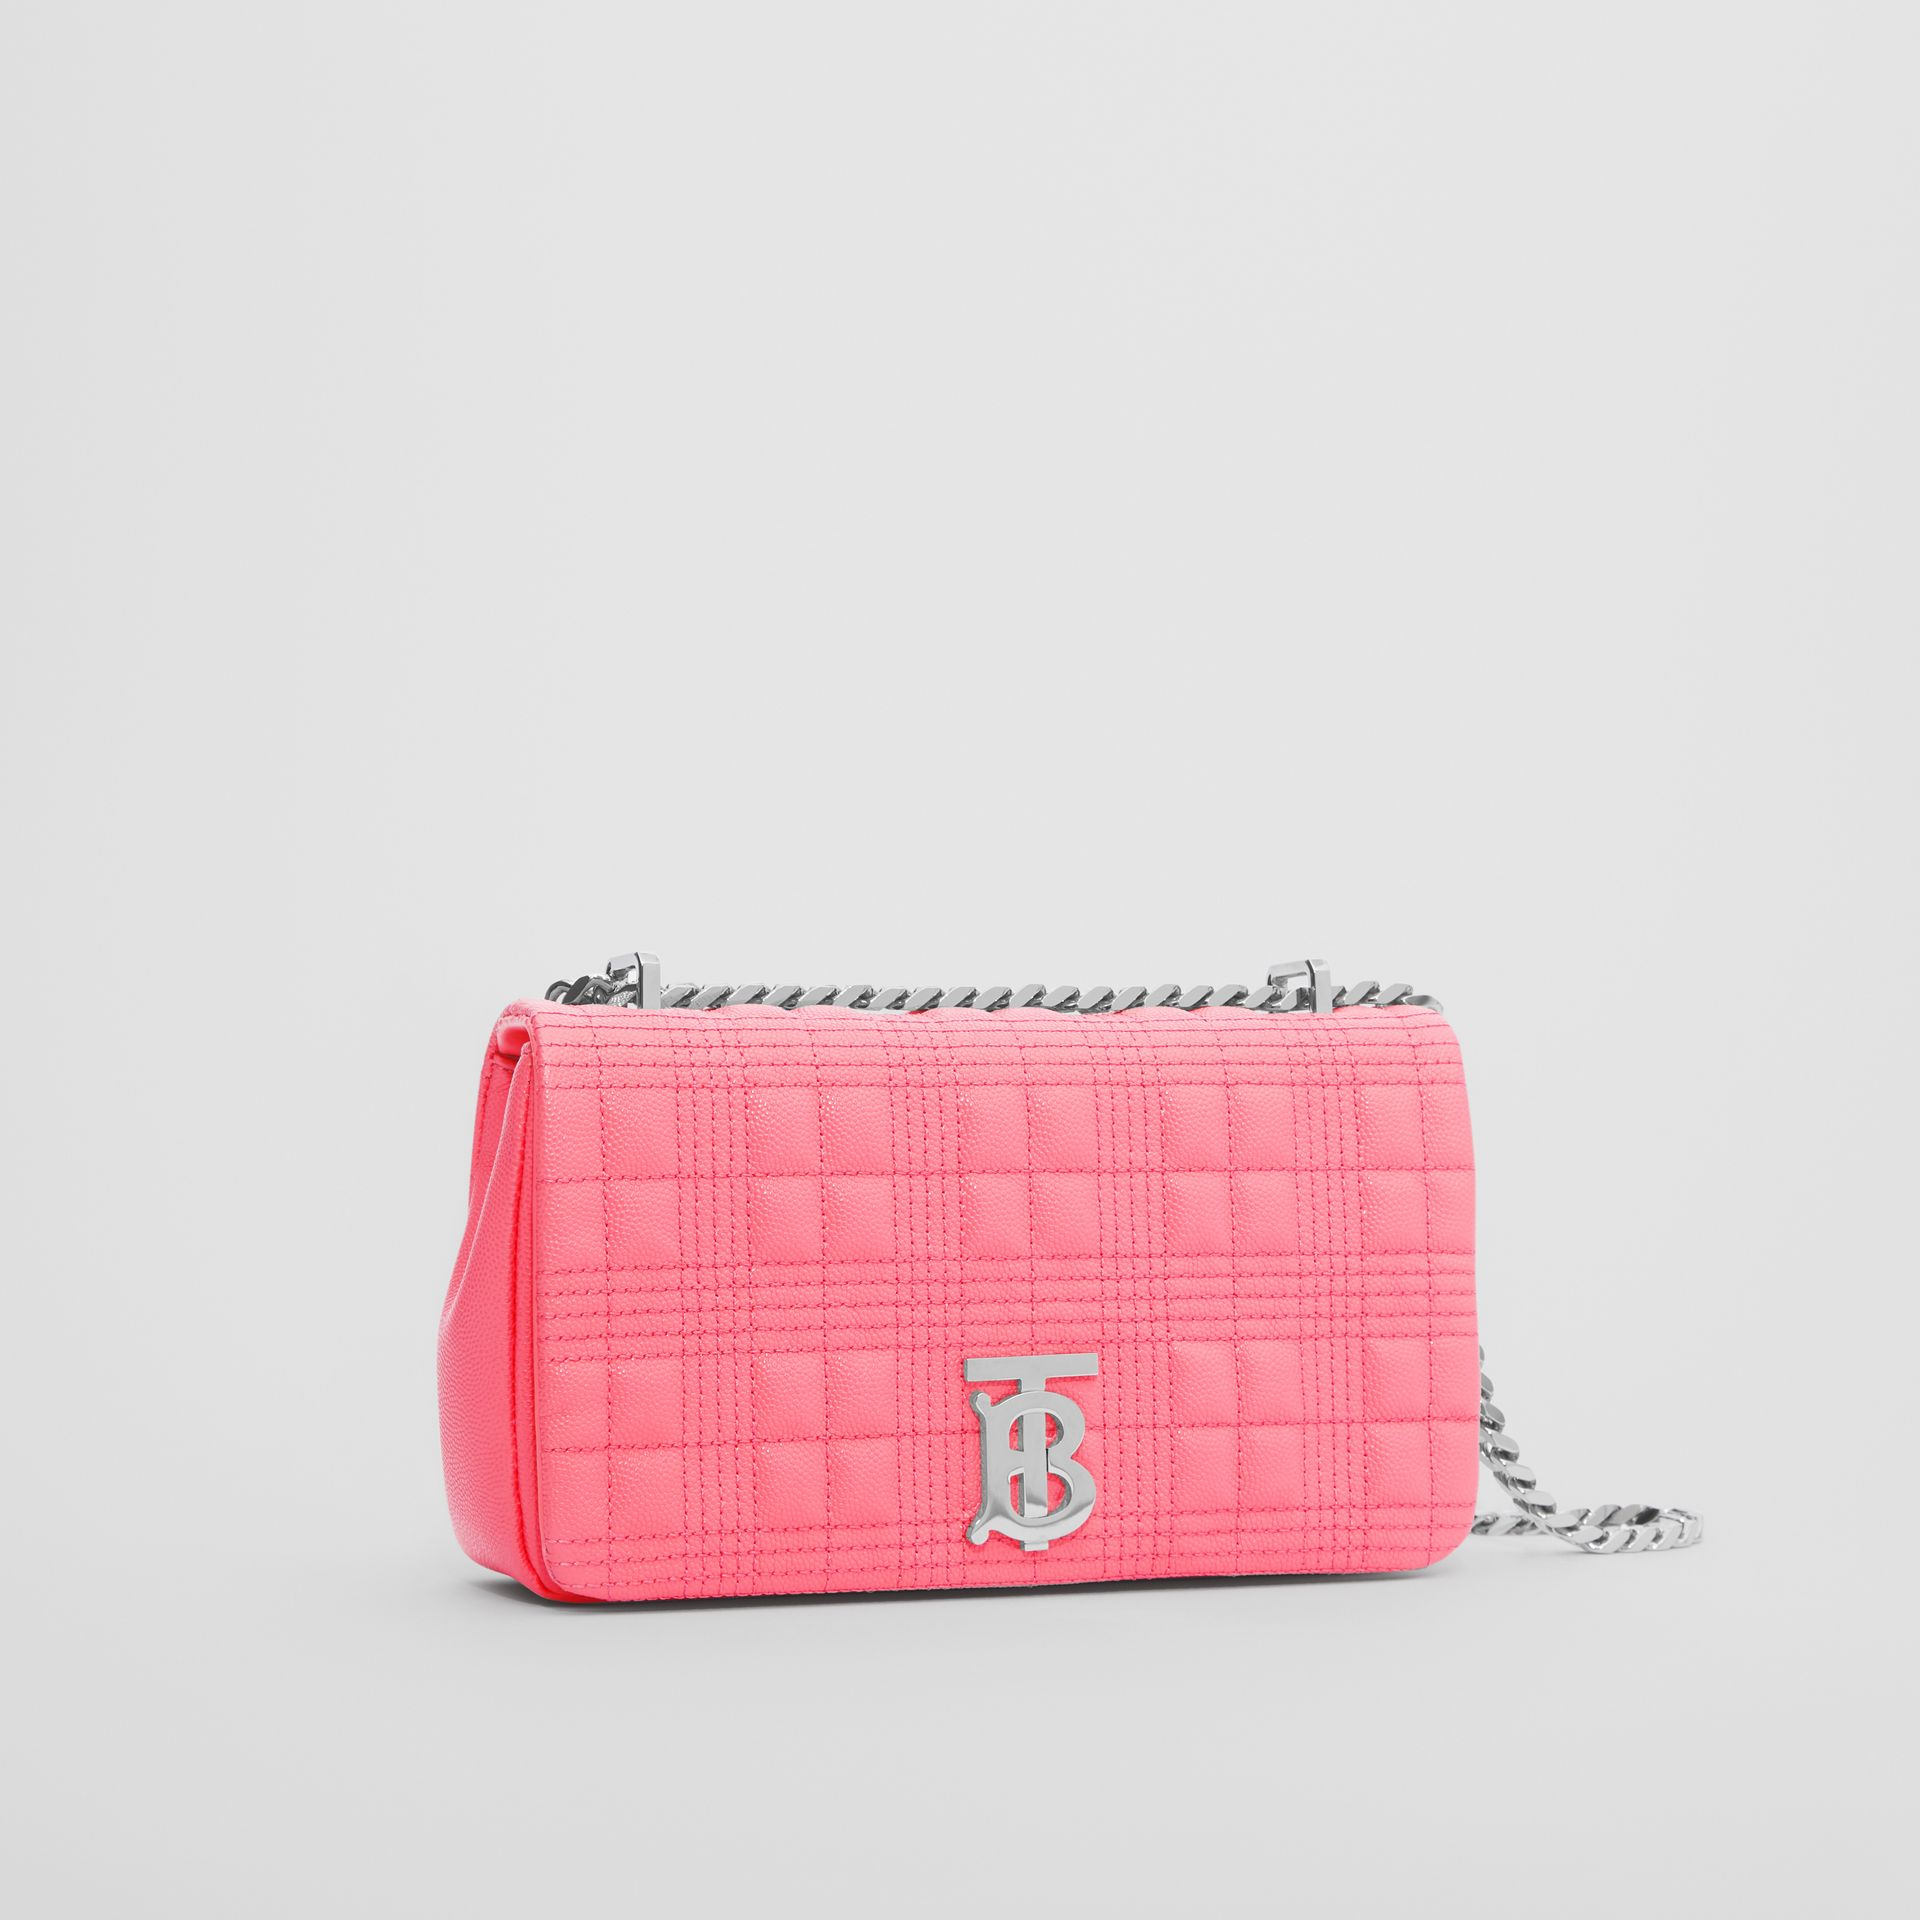 Small Quilted Grainy Leather Lola Bag in Candy Floss - Women | Burberry - gallery image 3